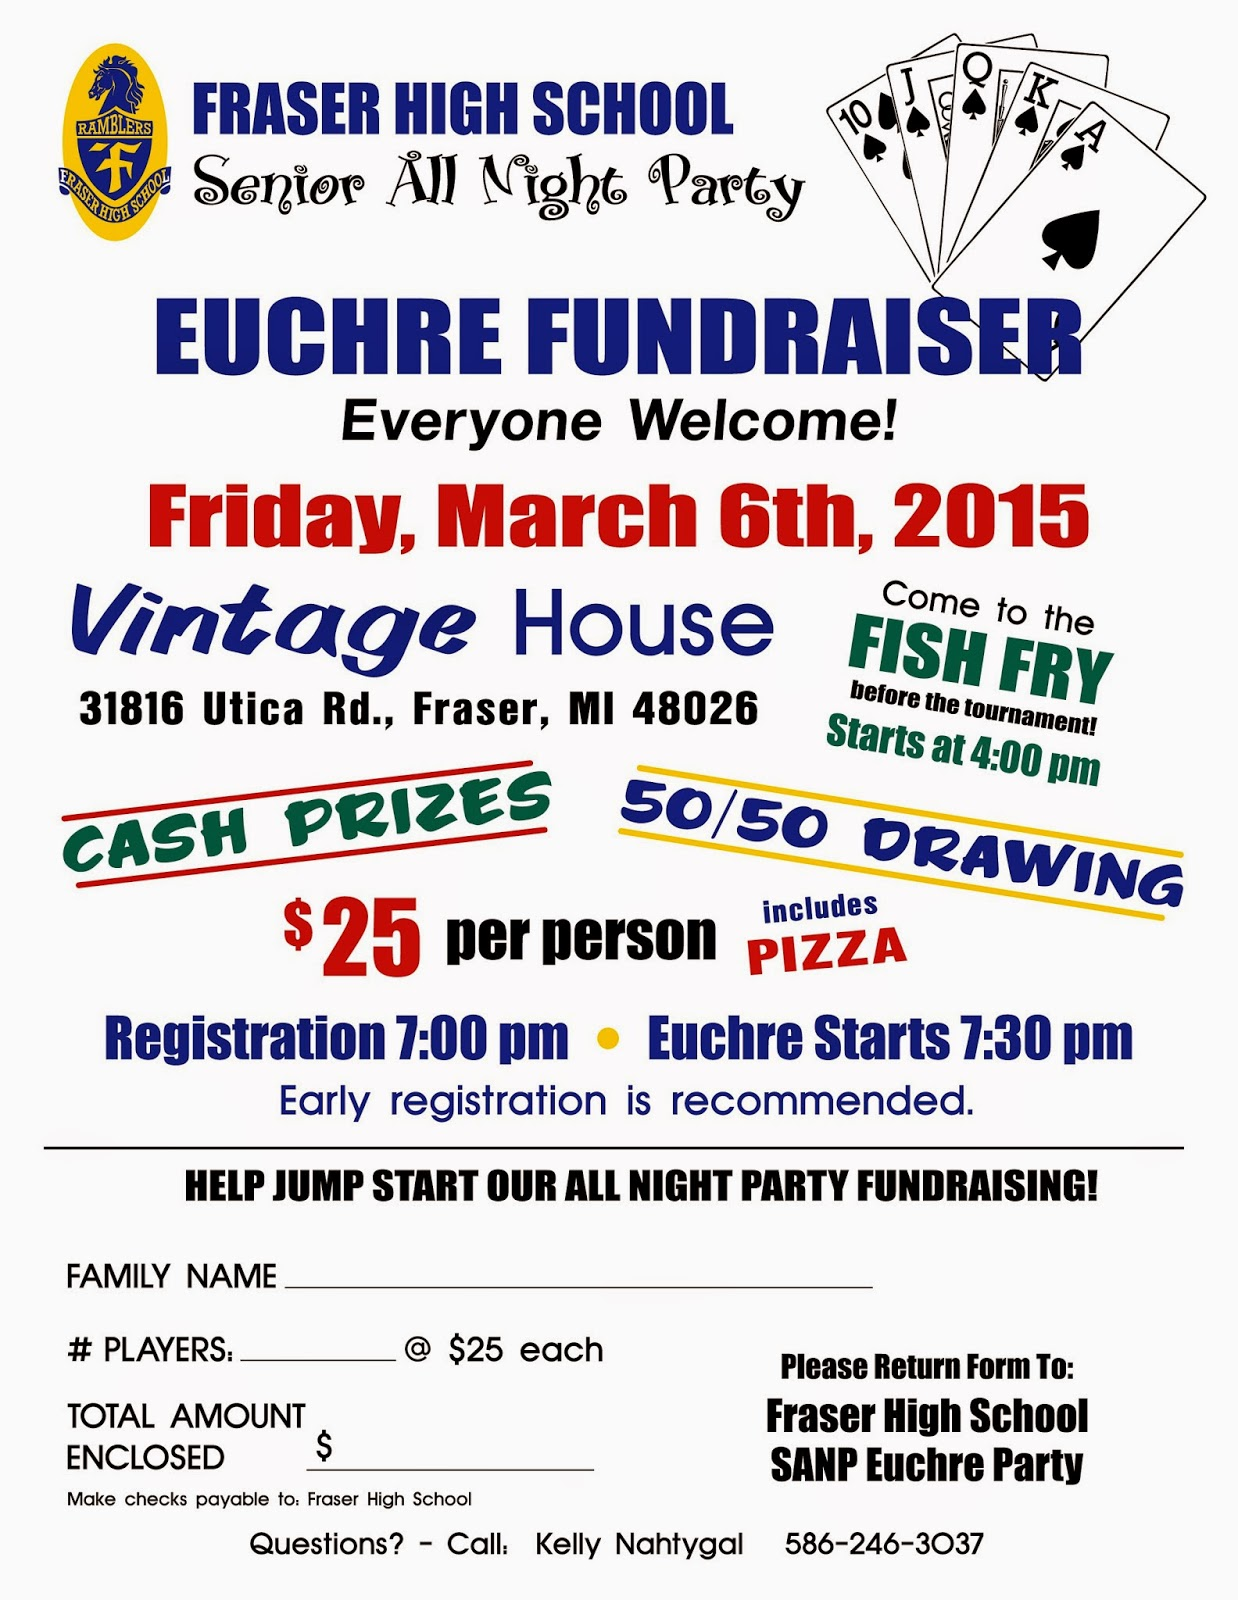 Euchre Tournament Fundraiser MI